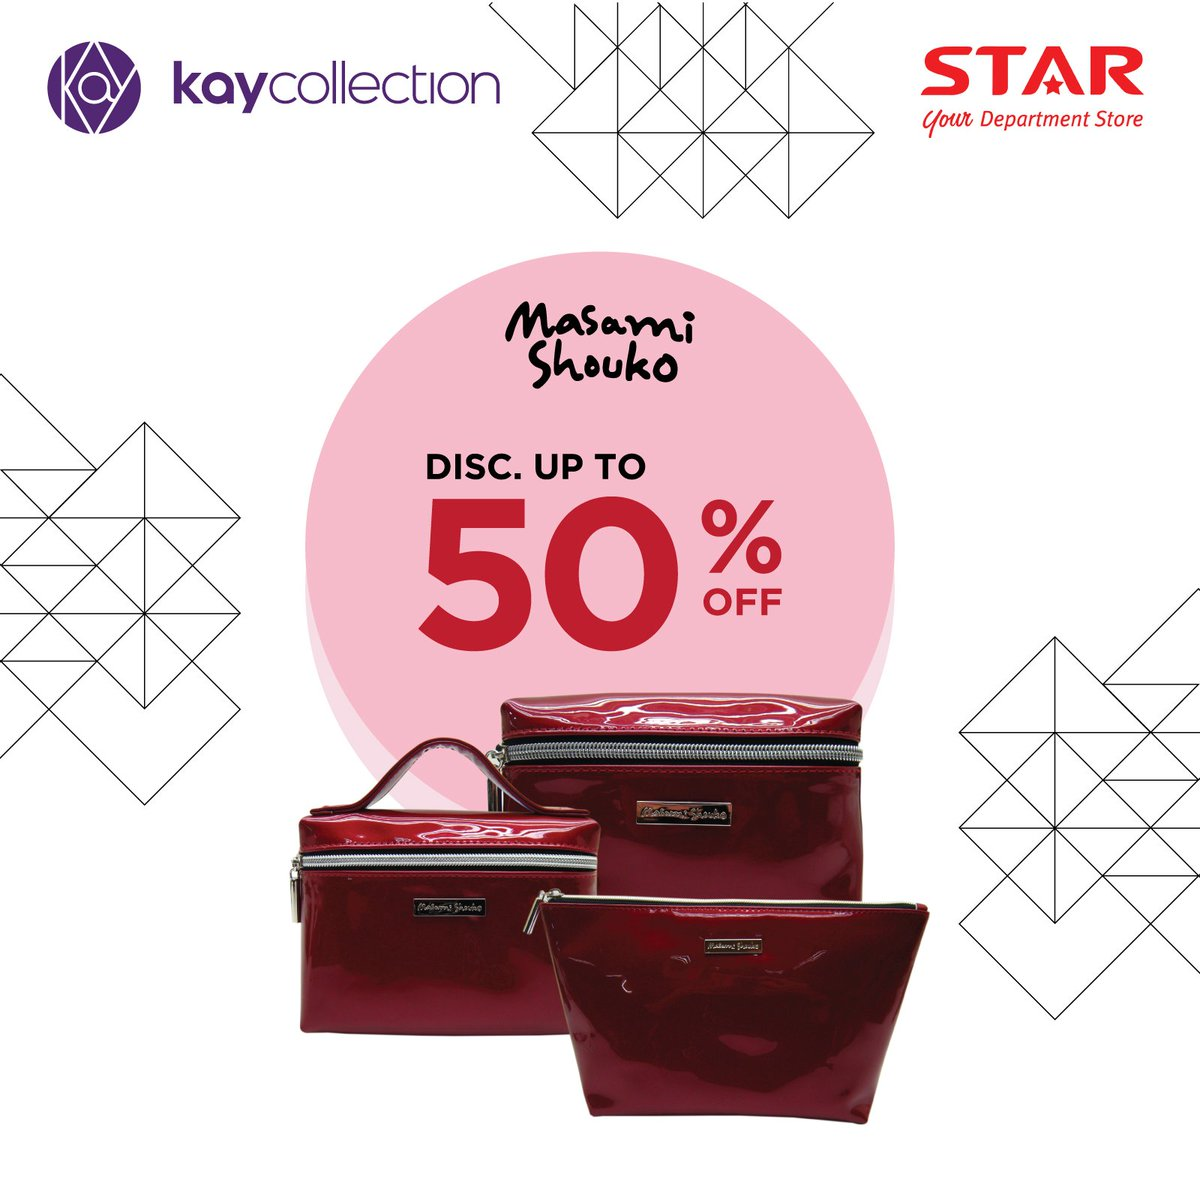 Star Dept Store On Twitter Hi Ladies Special Discount Up To 50 Masami Shouko By Untill 31 January 2017 Only Stardeptstore